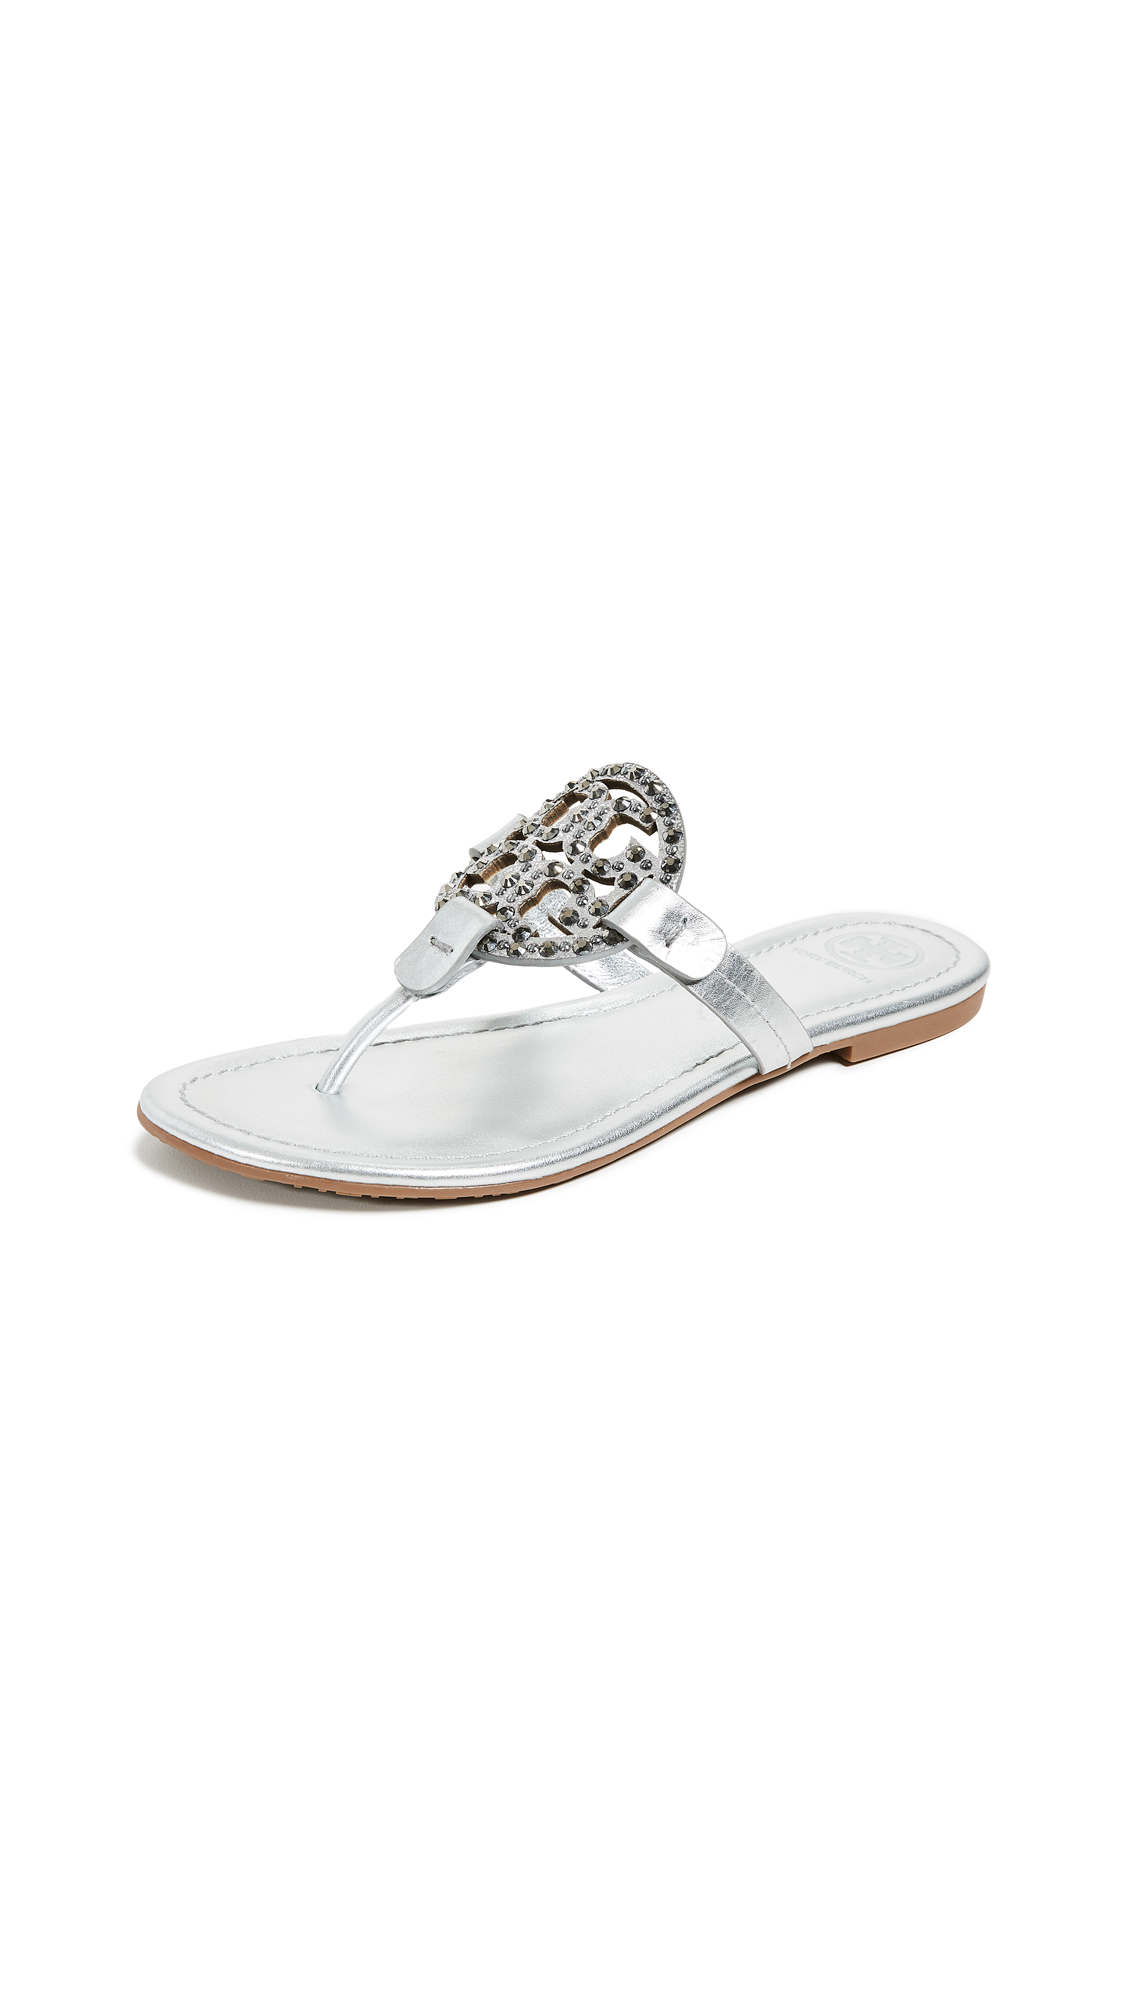 Tory Burch Miller Embellished Sandals - Silver